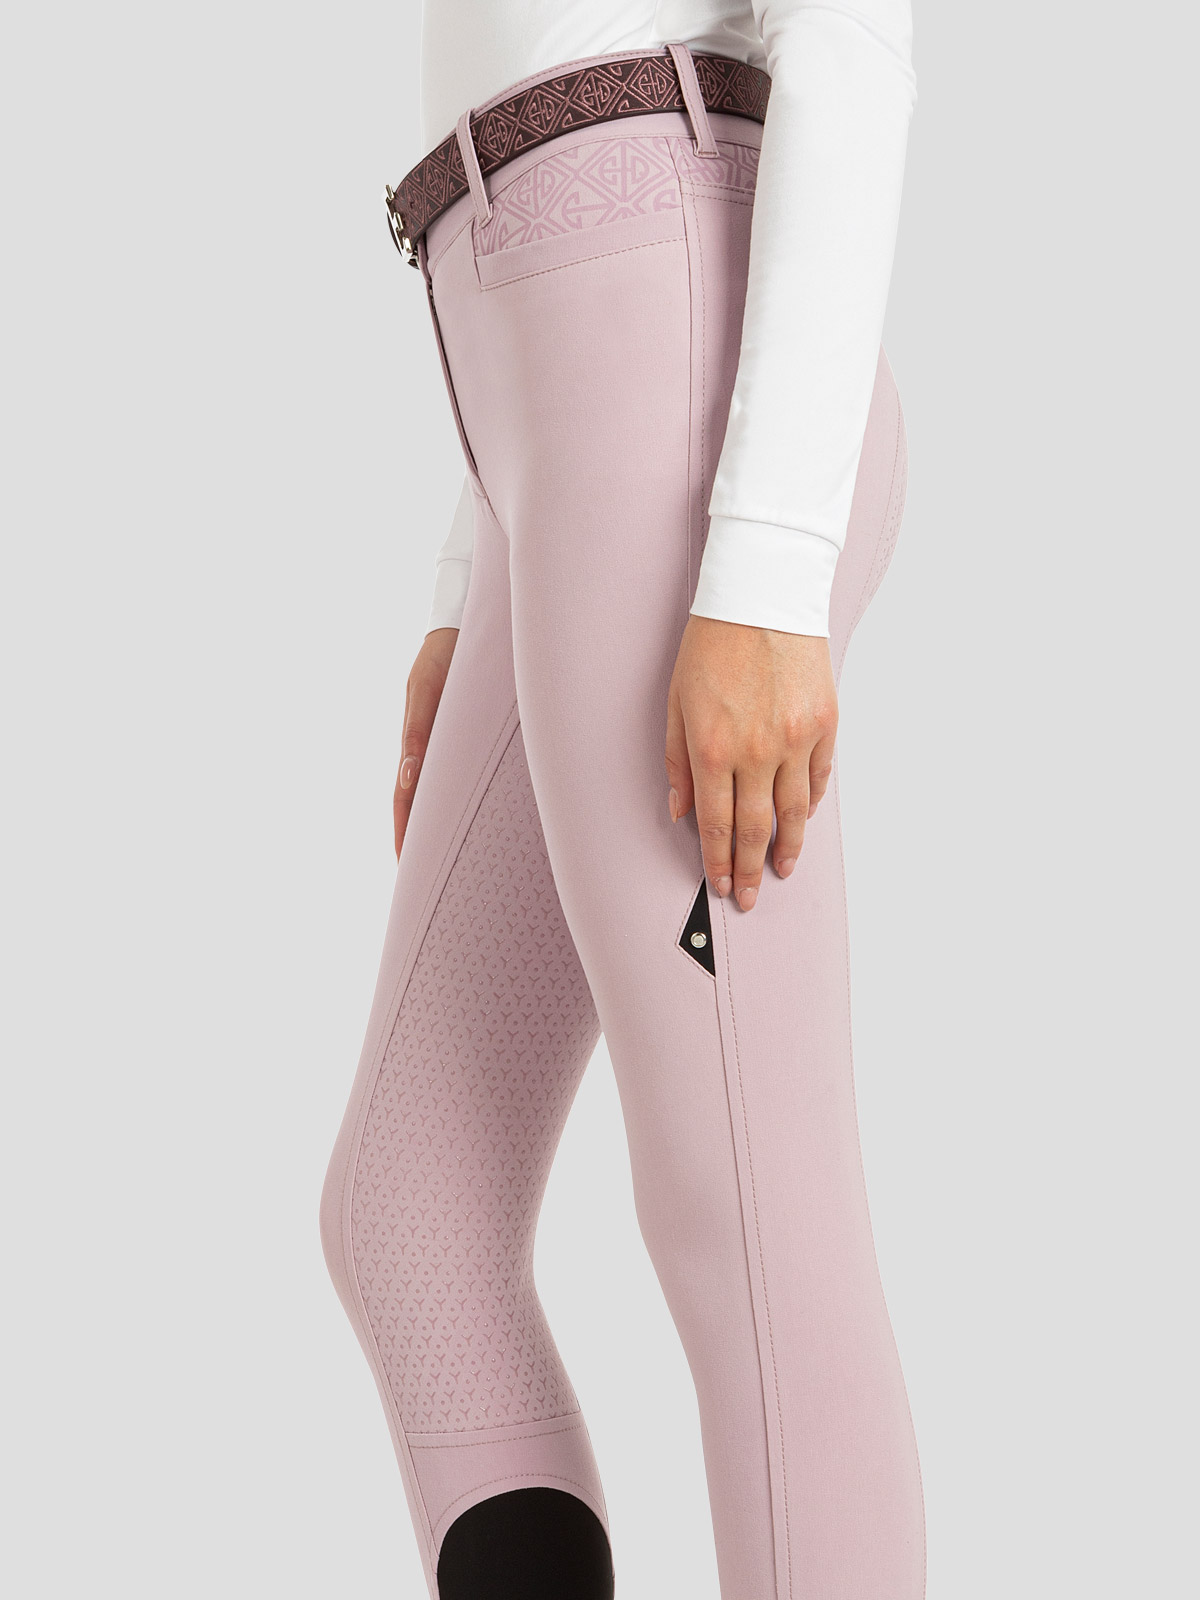 ESASHI WOMEN'S FULL SEAT GRIP BREECHES WITH LOGO PATTERN 4